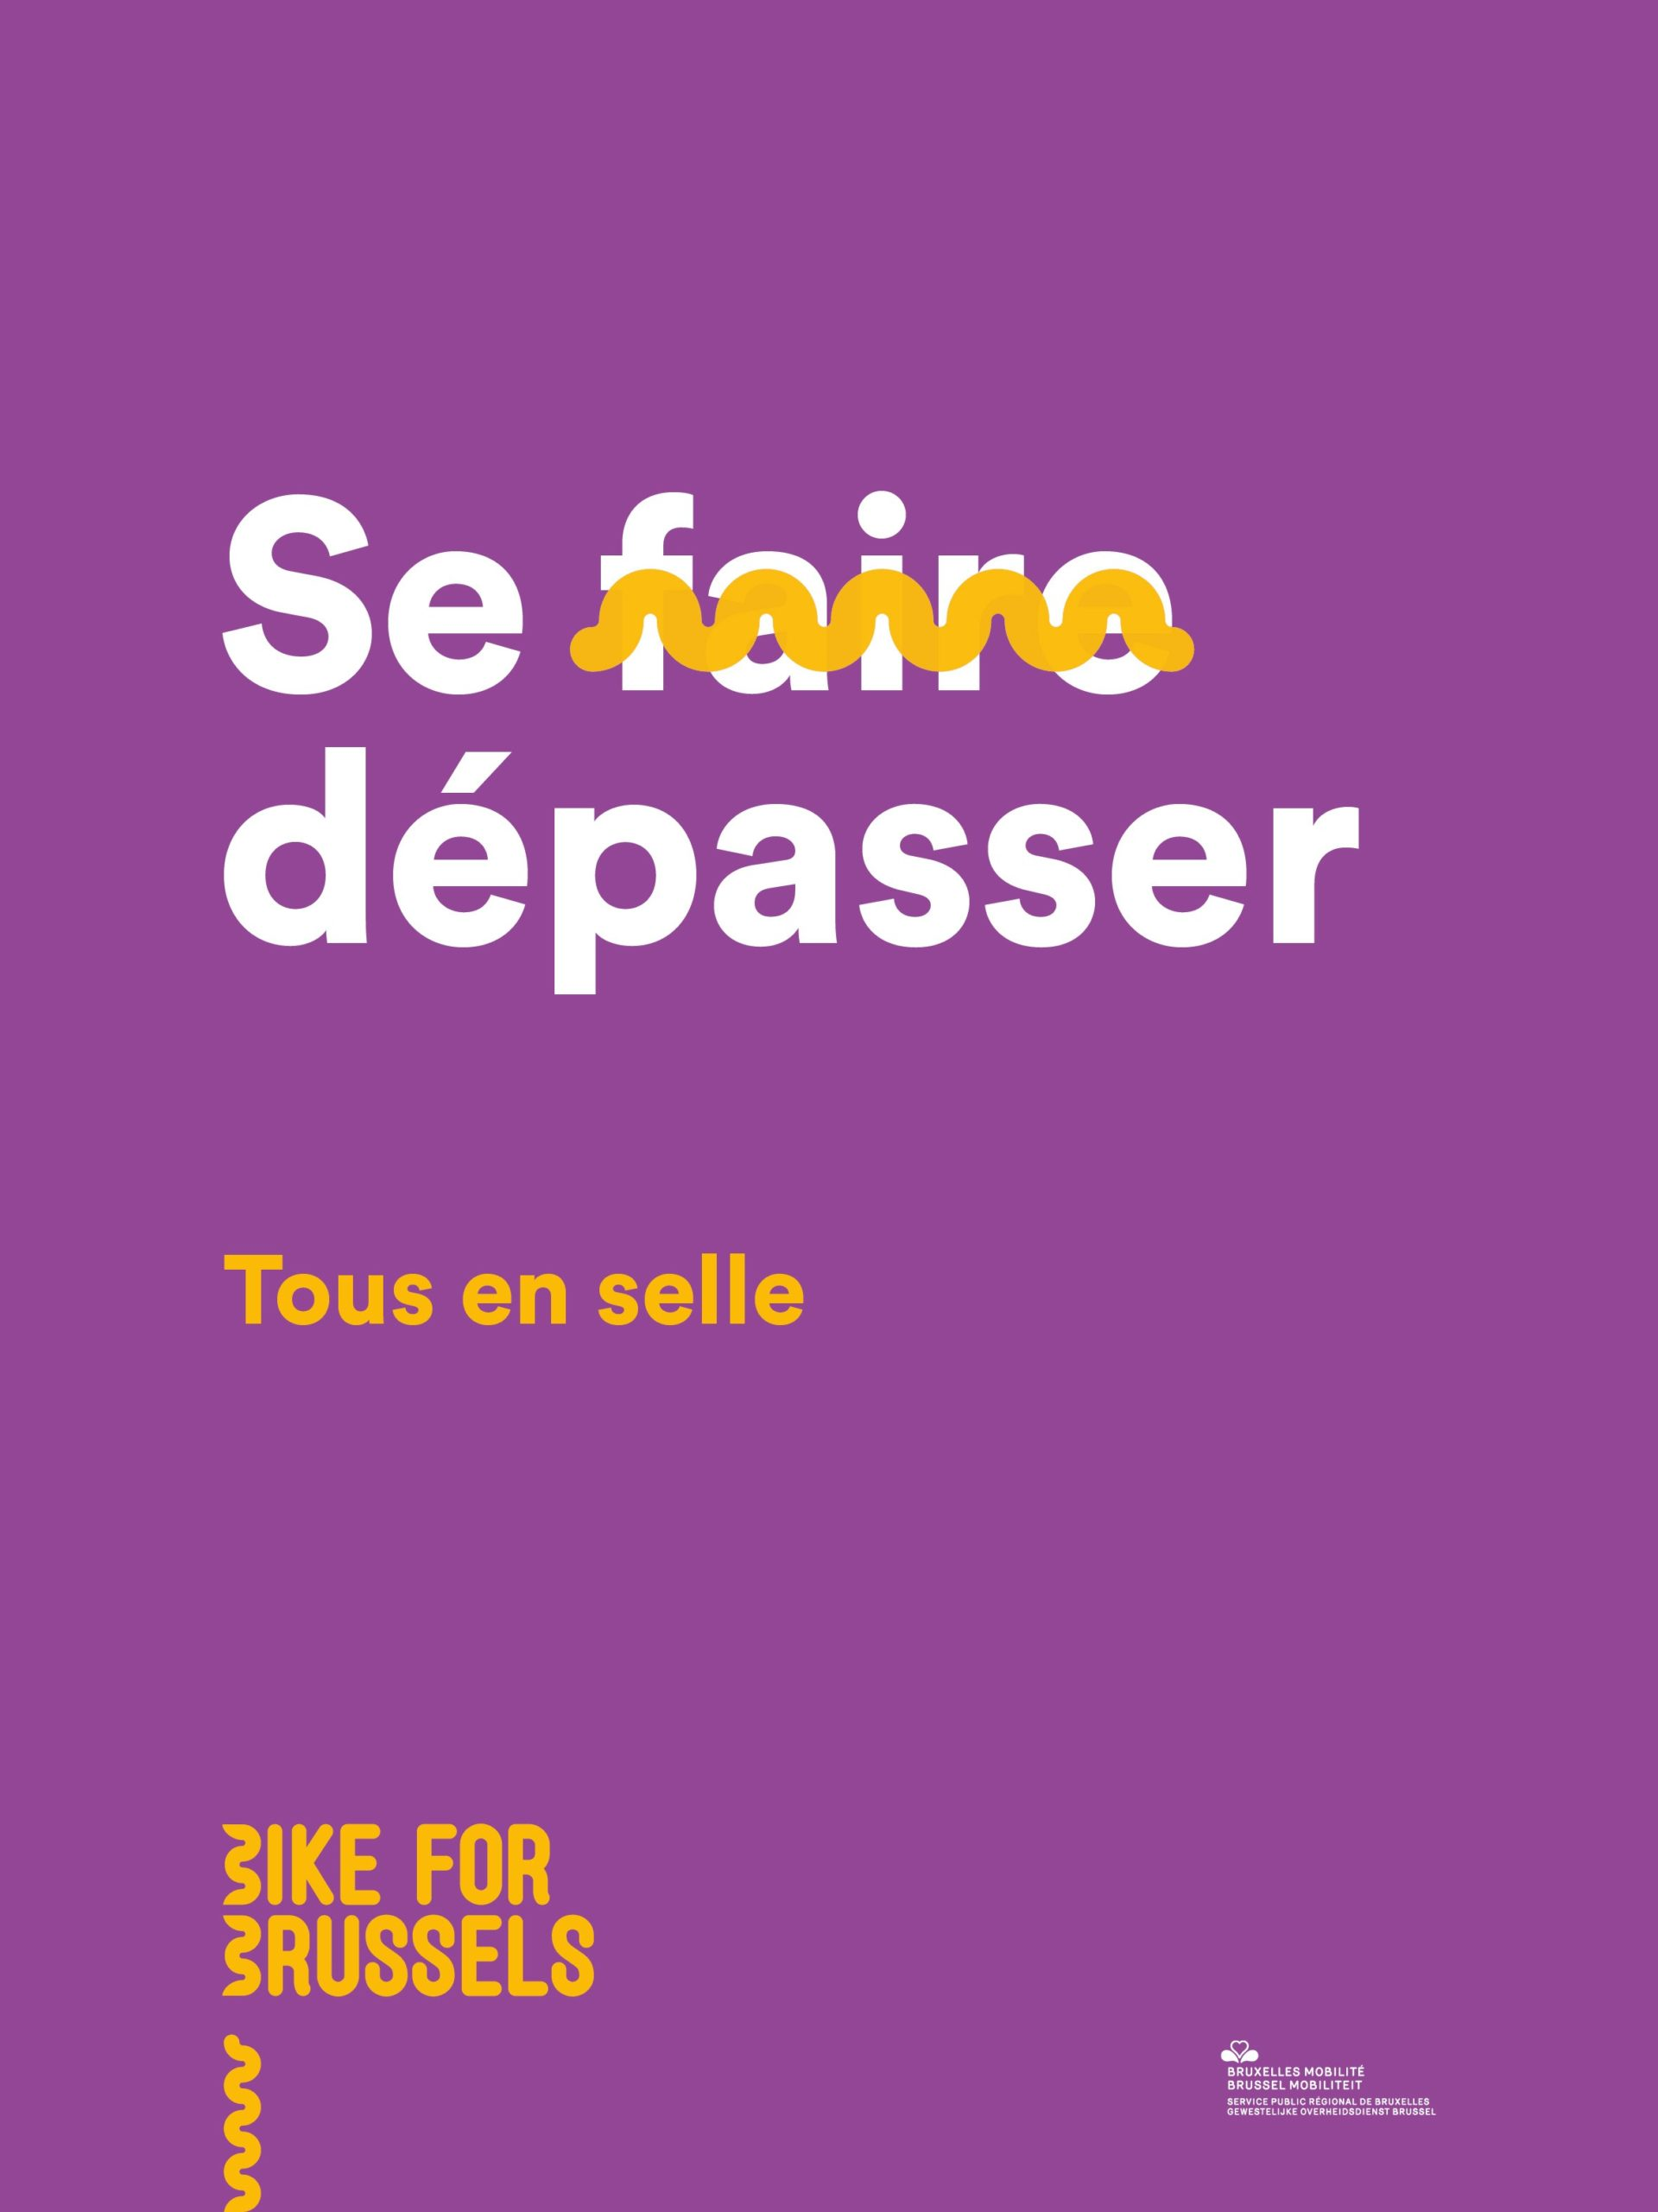 Bike For Brussels 9